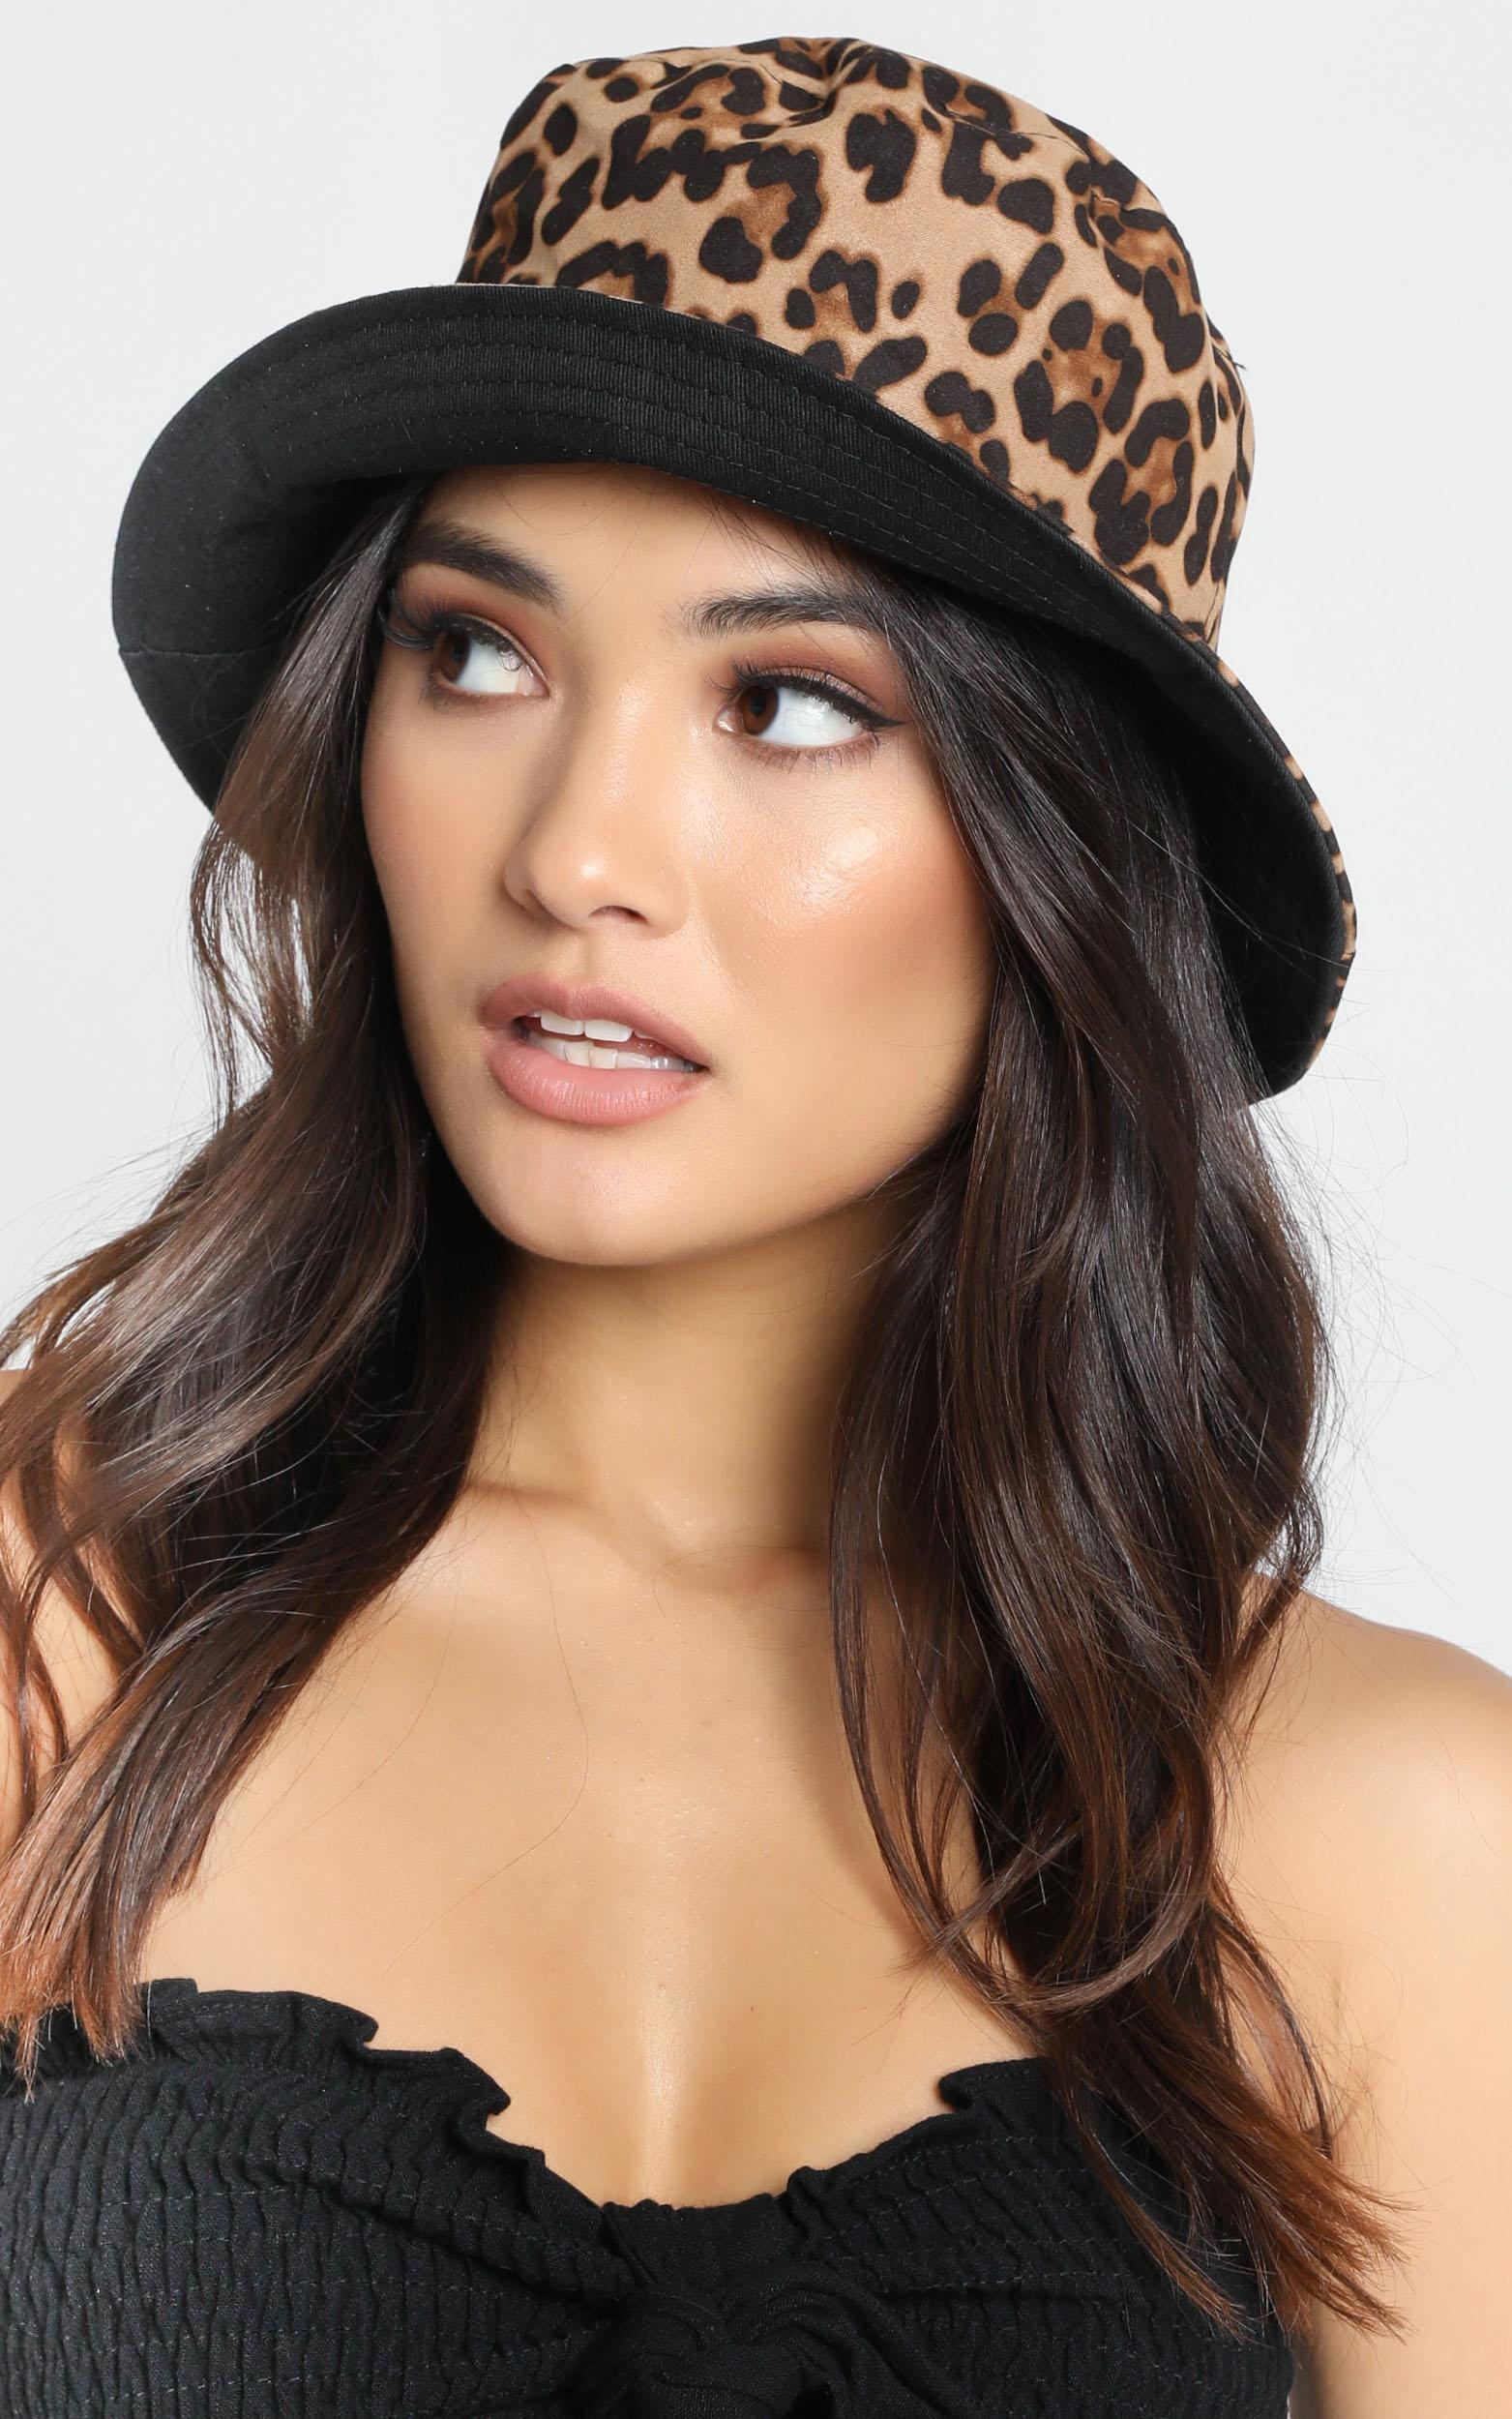 Fierce Obsession Bucket Hat in Leopard Print, , hi-res image number null